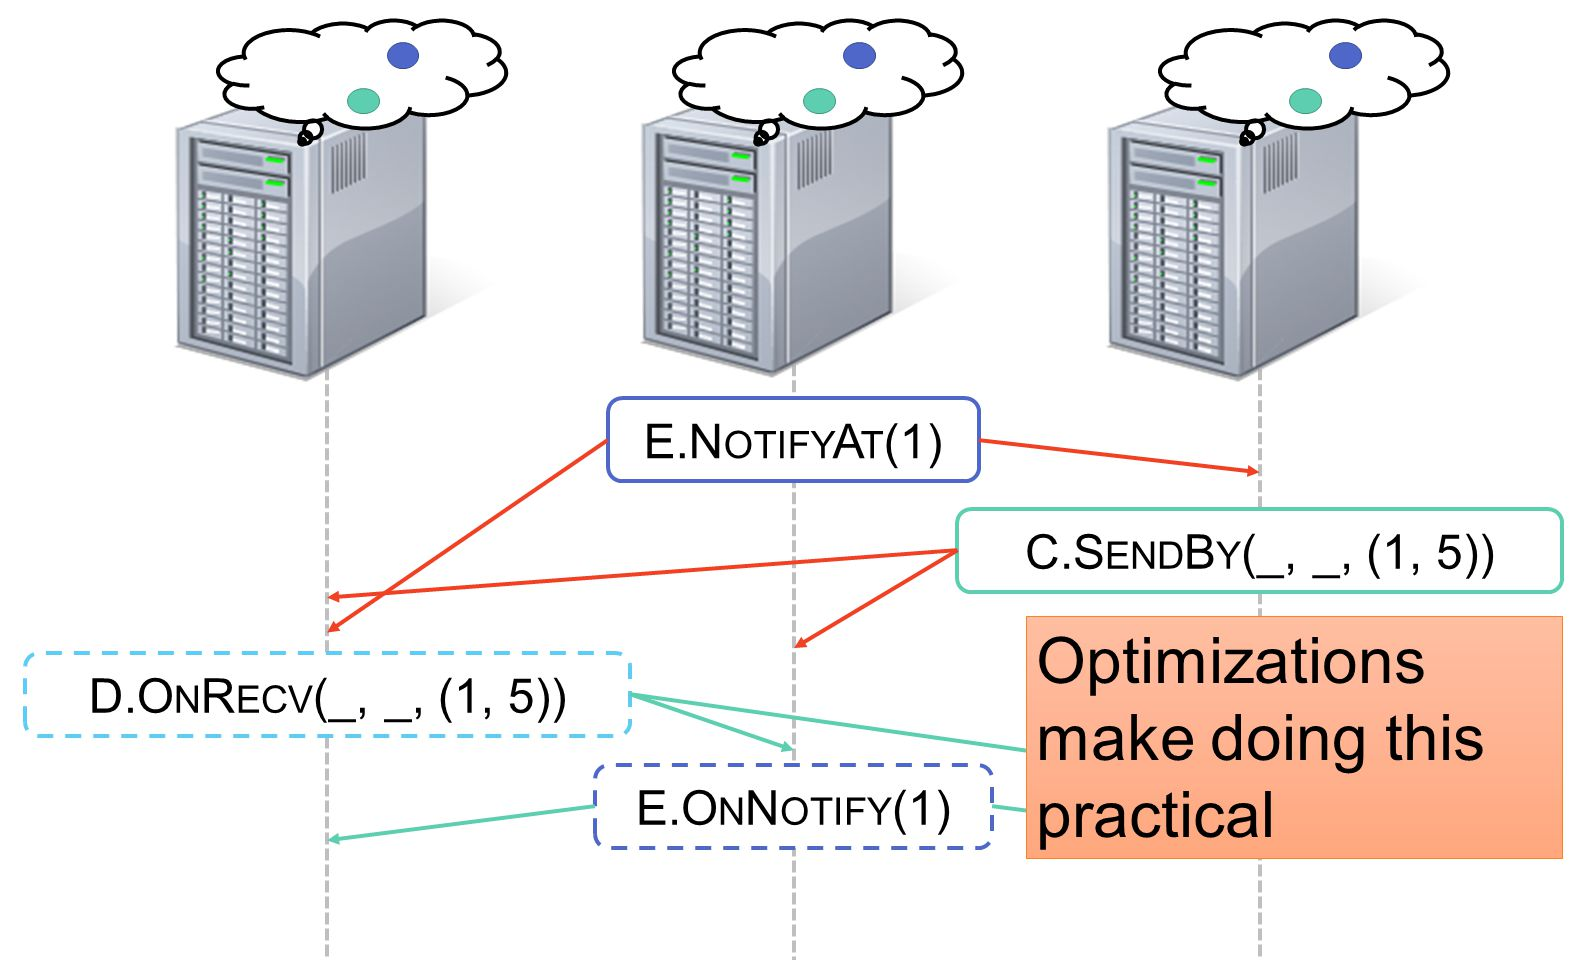 D.O N R ECV (_, _, (1, 5)) C.S END B Y (_, _, (1, 5)) E.O N N OTIFY (1) E.N OTIFY A T (1) Optimizations make doing this practical